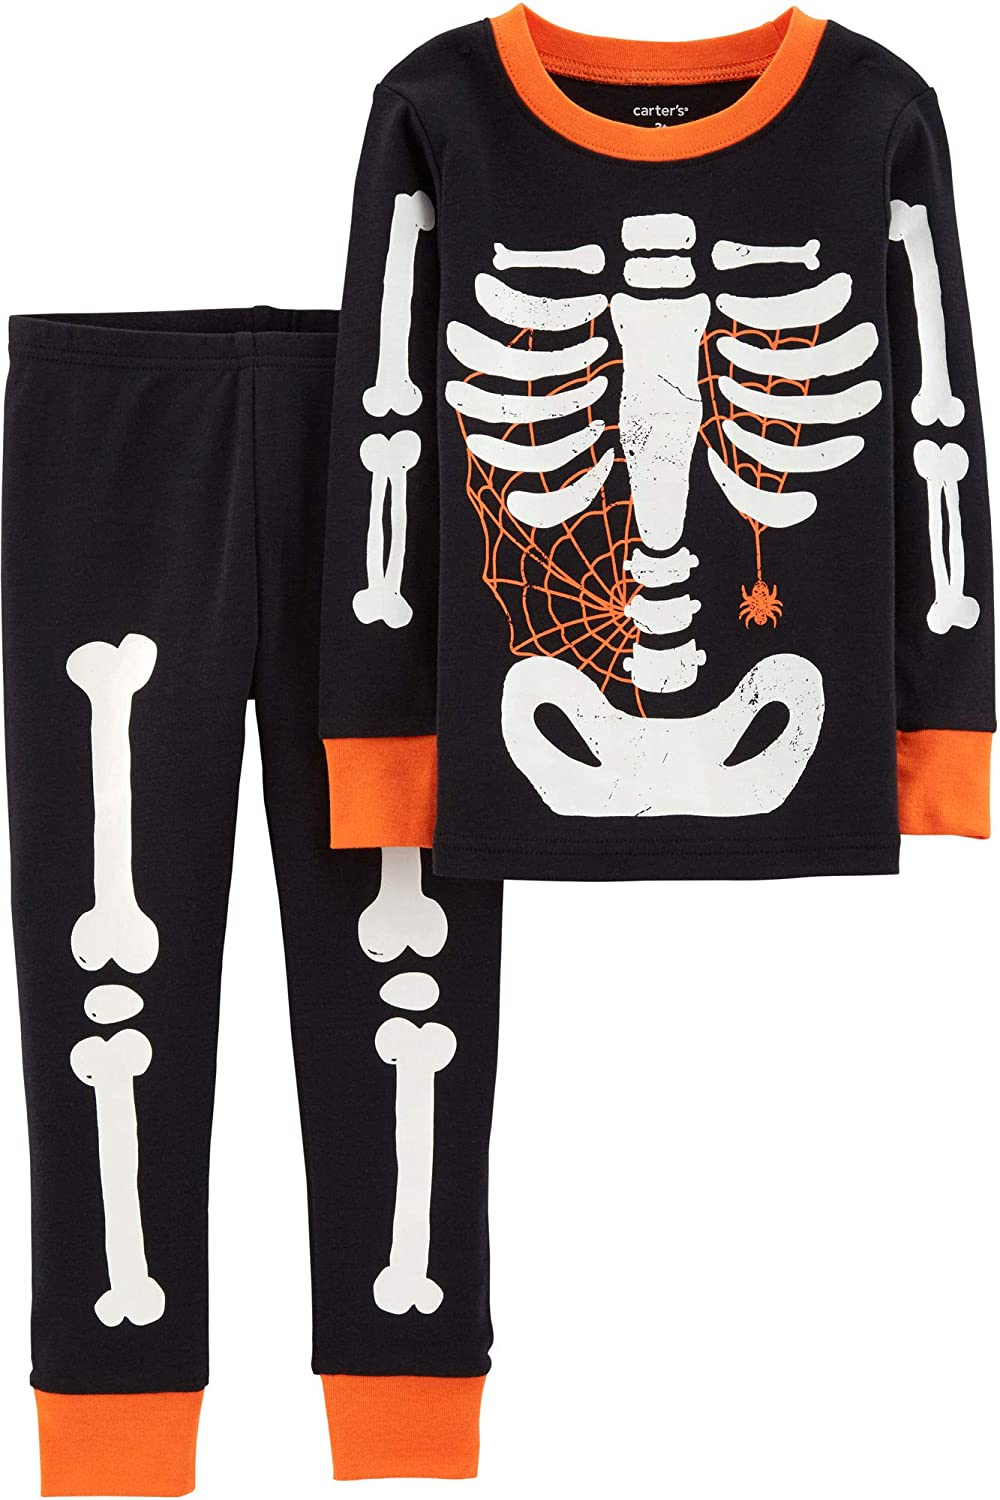 3498cce052cd Amazon.com  Carter s Boys  Glow-in-the-dark Halloween Pajamas  Clothing